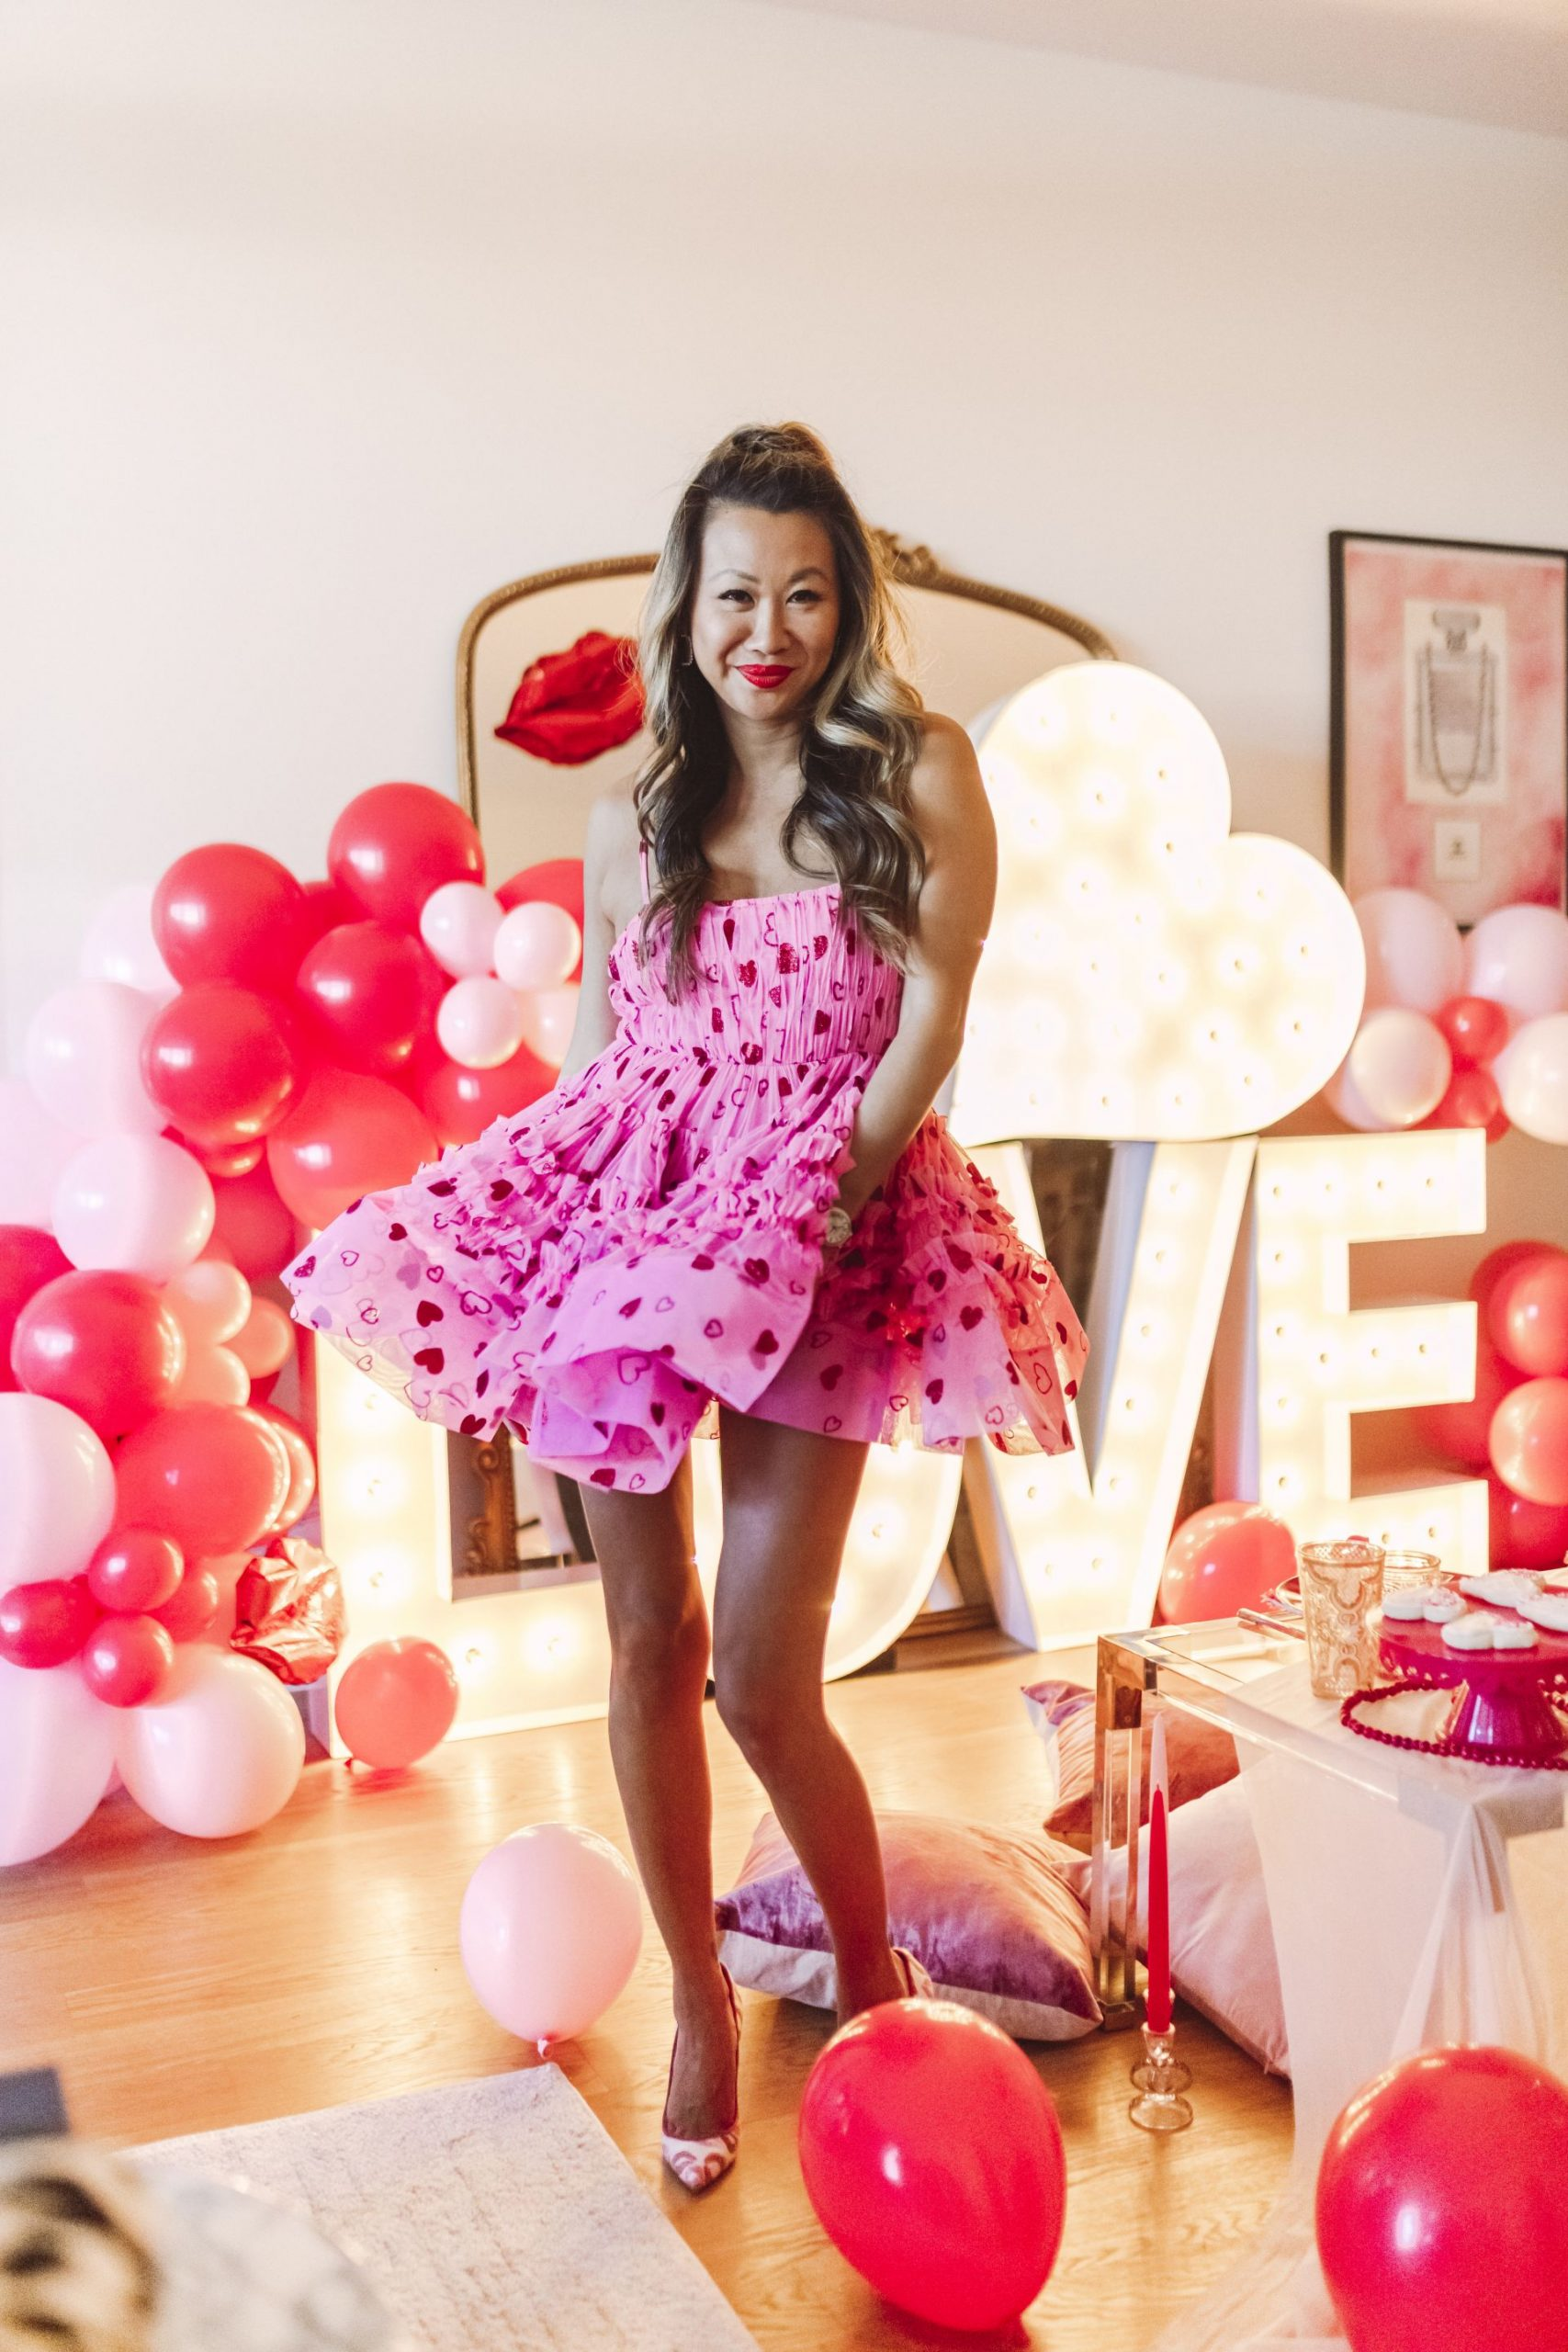 Valentine's Day style, pink vday dress, valentines day dress, galentines day dress, Glam Party Decor Ideas, Galentine's party decor, Valentine's day party decor, girls night party decor ideas, Vday party decorations, pink and red party theme, girly party theme decor, love party theme decor, valentines day party ideas, valentines day party ideas for adults,  light up marquee letters for parties, Red Soles and Red Wine, Jennifer Worman